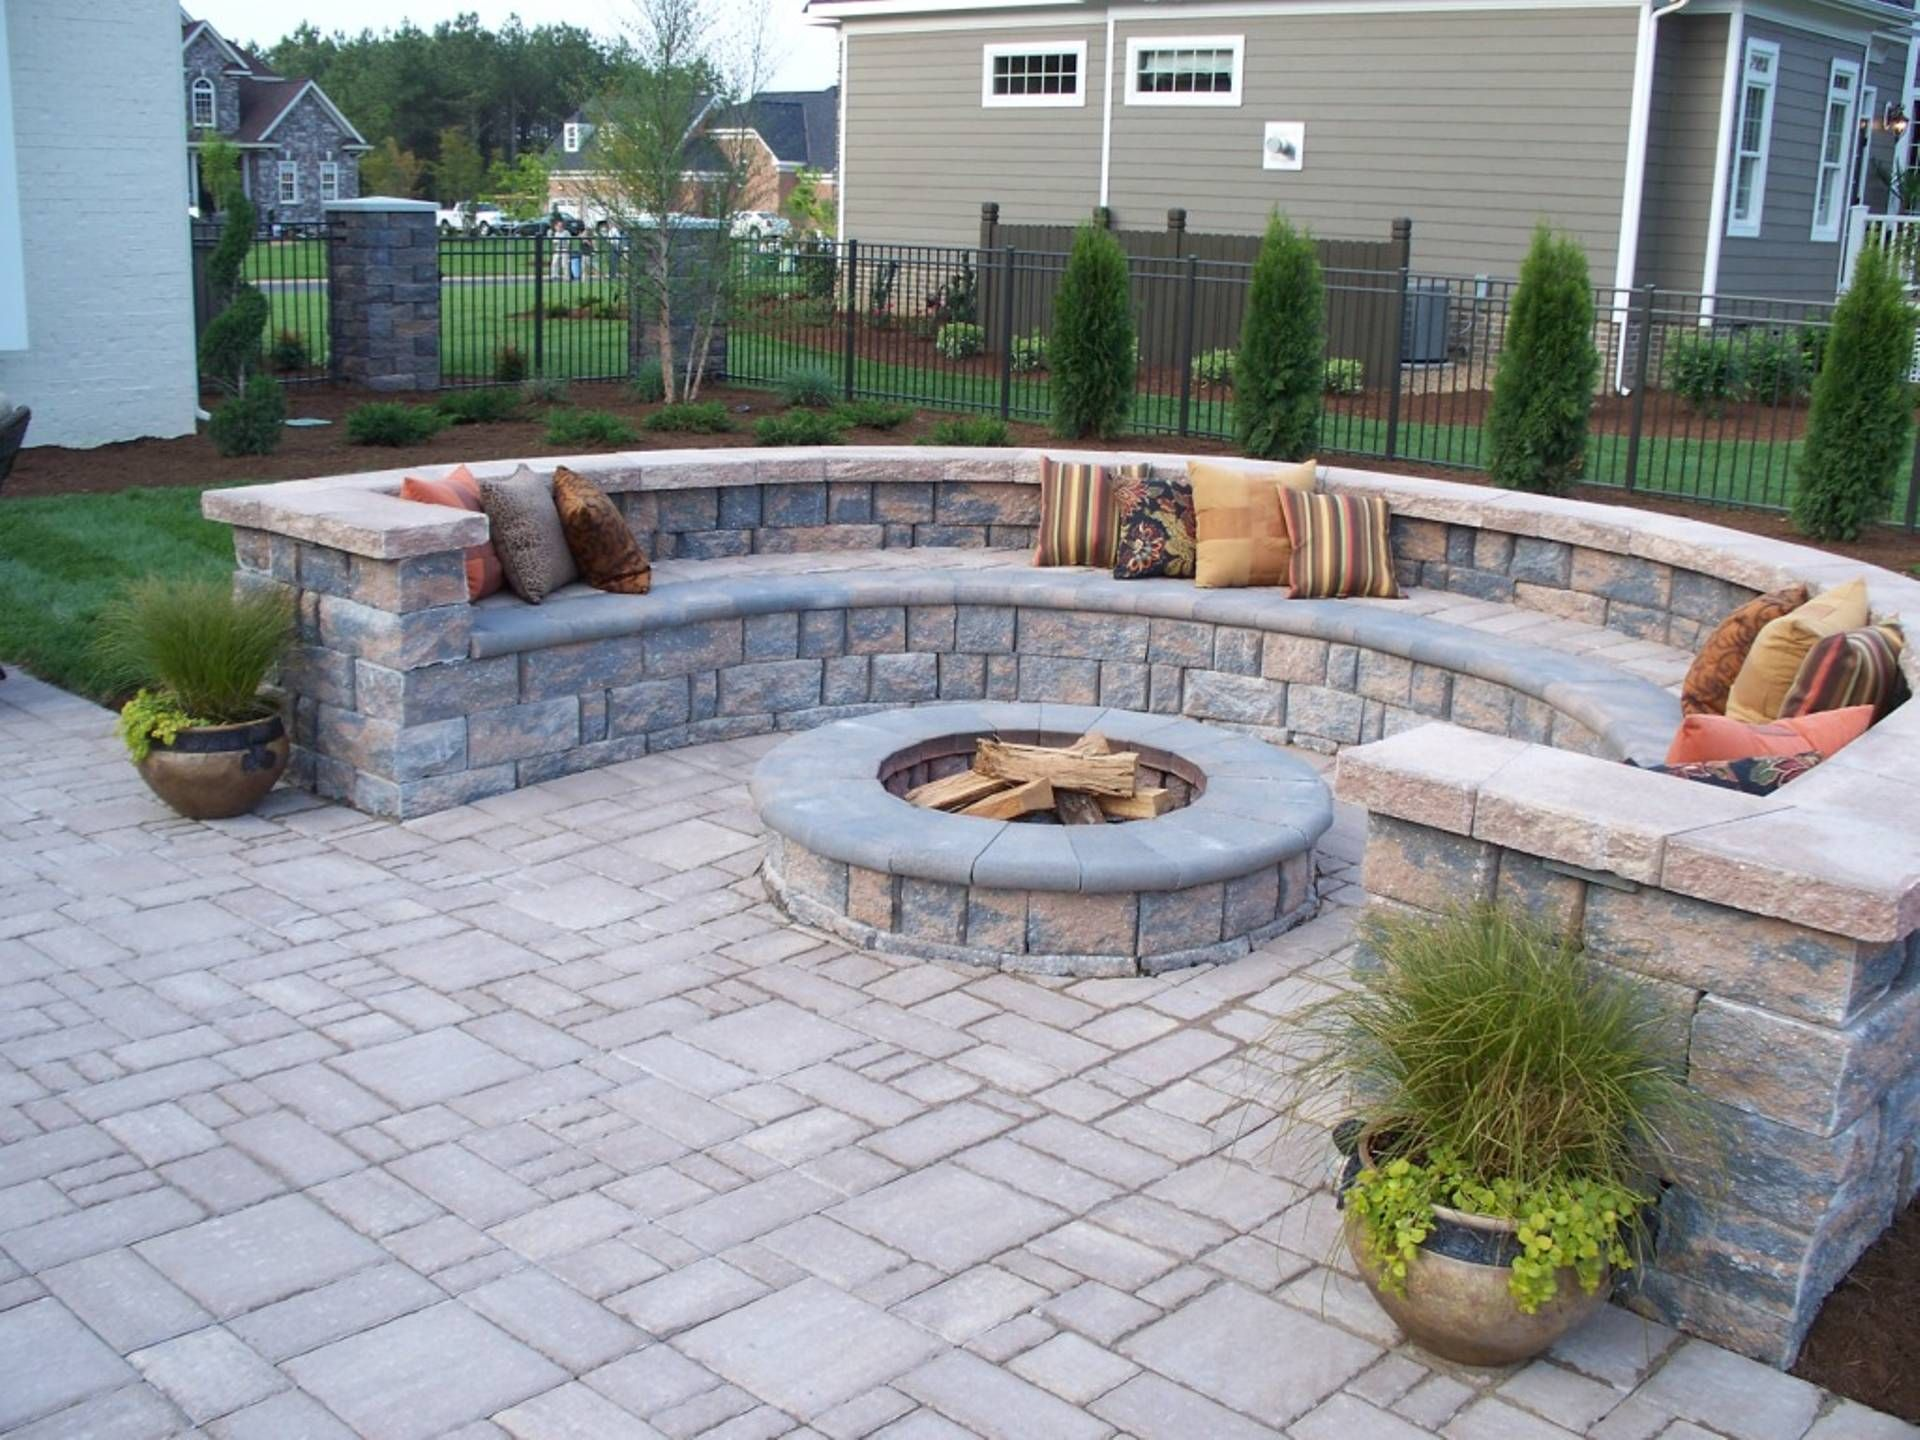 Stone fire pit designs patio traditional with artistic hardscape - Paver Patio With Firepit And All Around Sitting Wall